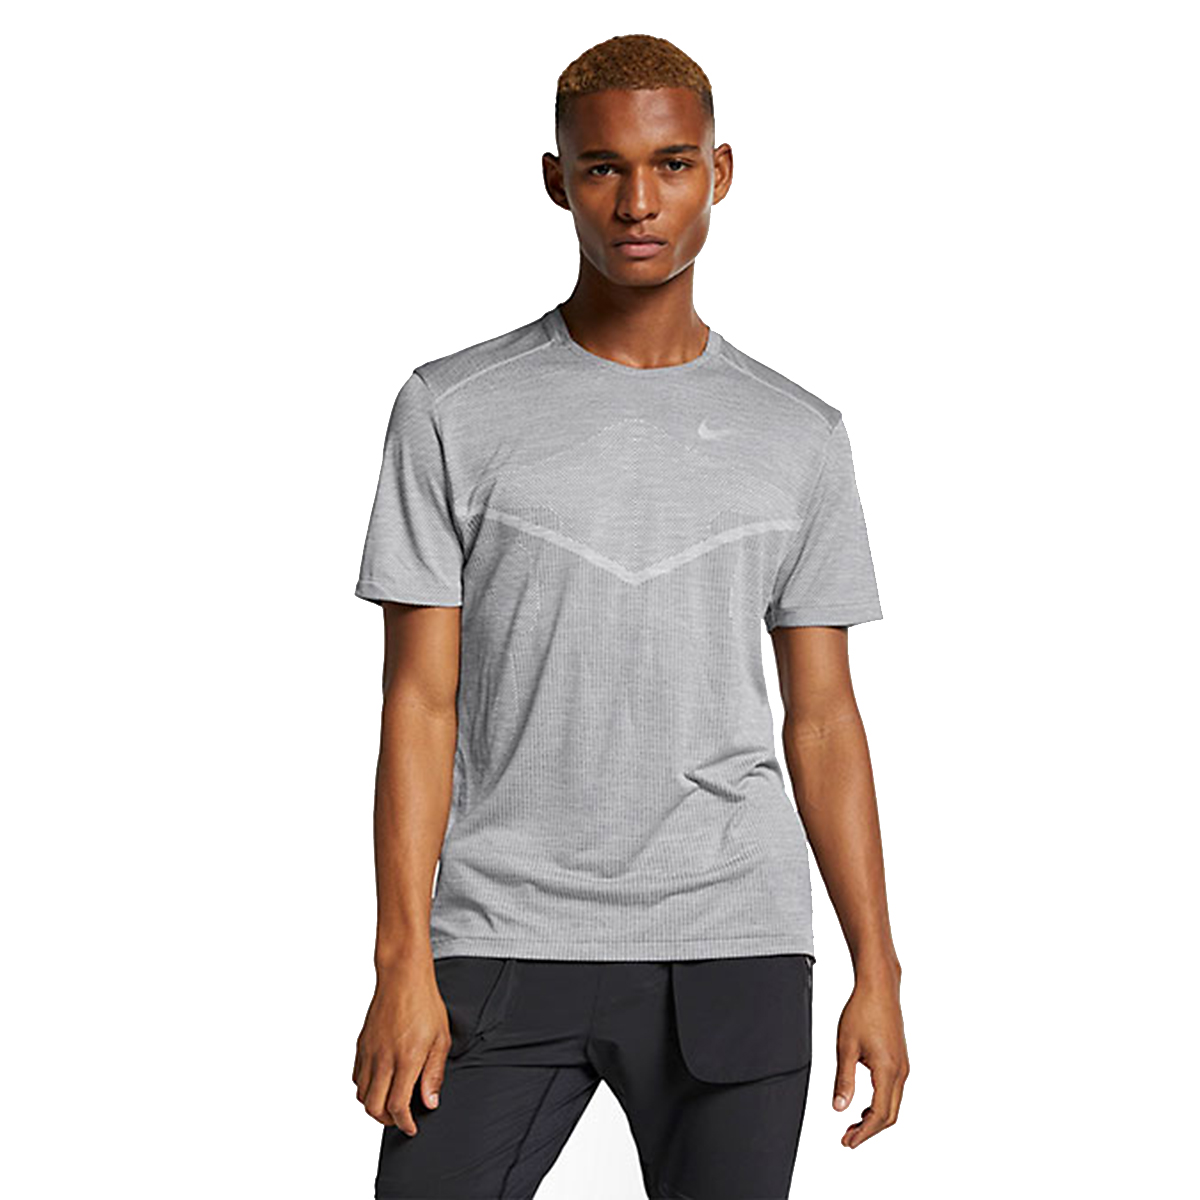 Men's Nike Techknit Ultra Top Short Sleeve Shirt - Color: Gunsmoke/Atmosphere Grey - Size: S, Gunsmoke/Atmosphere Grey, large, image 1